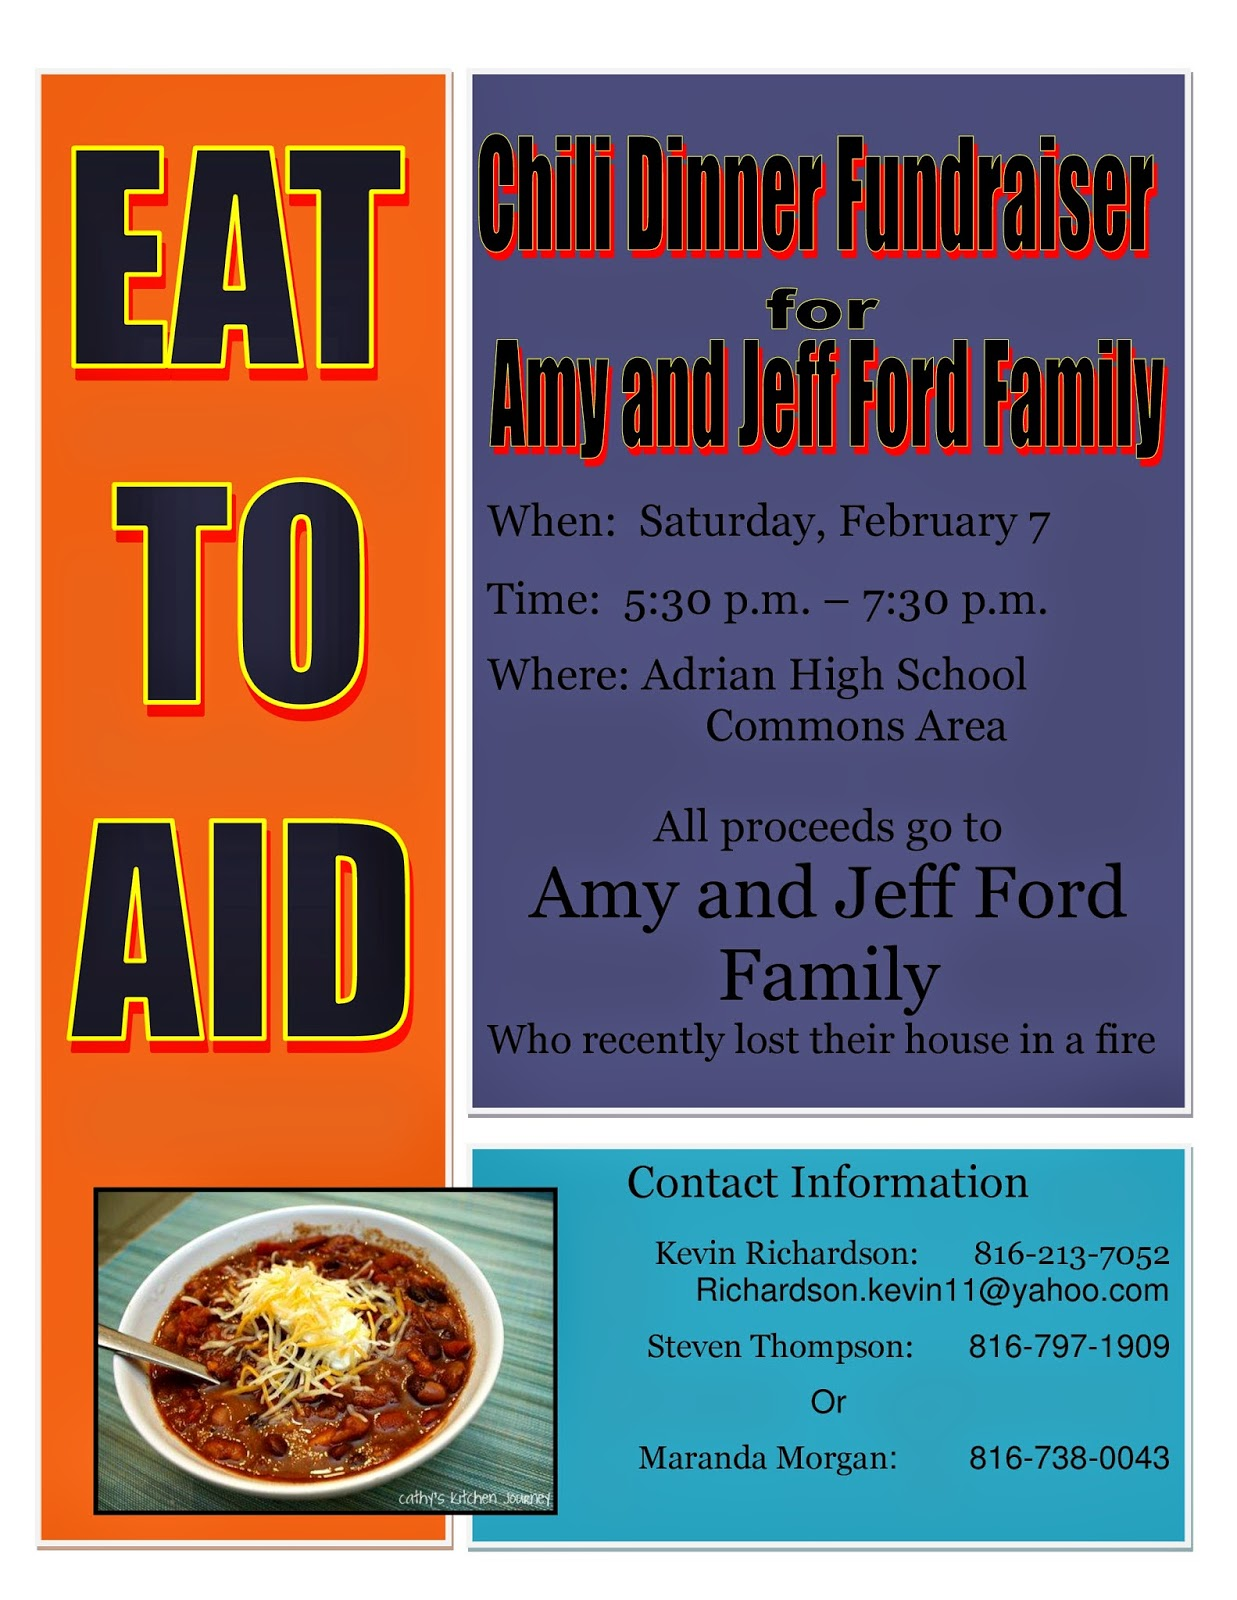 Gophers and Cheese: 2011 SCVR Chili Feed This Weekend  |Chili Feed Fundraiser